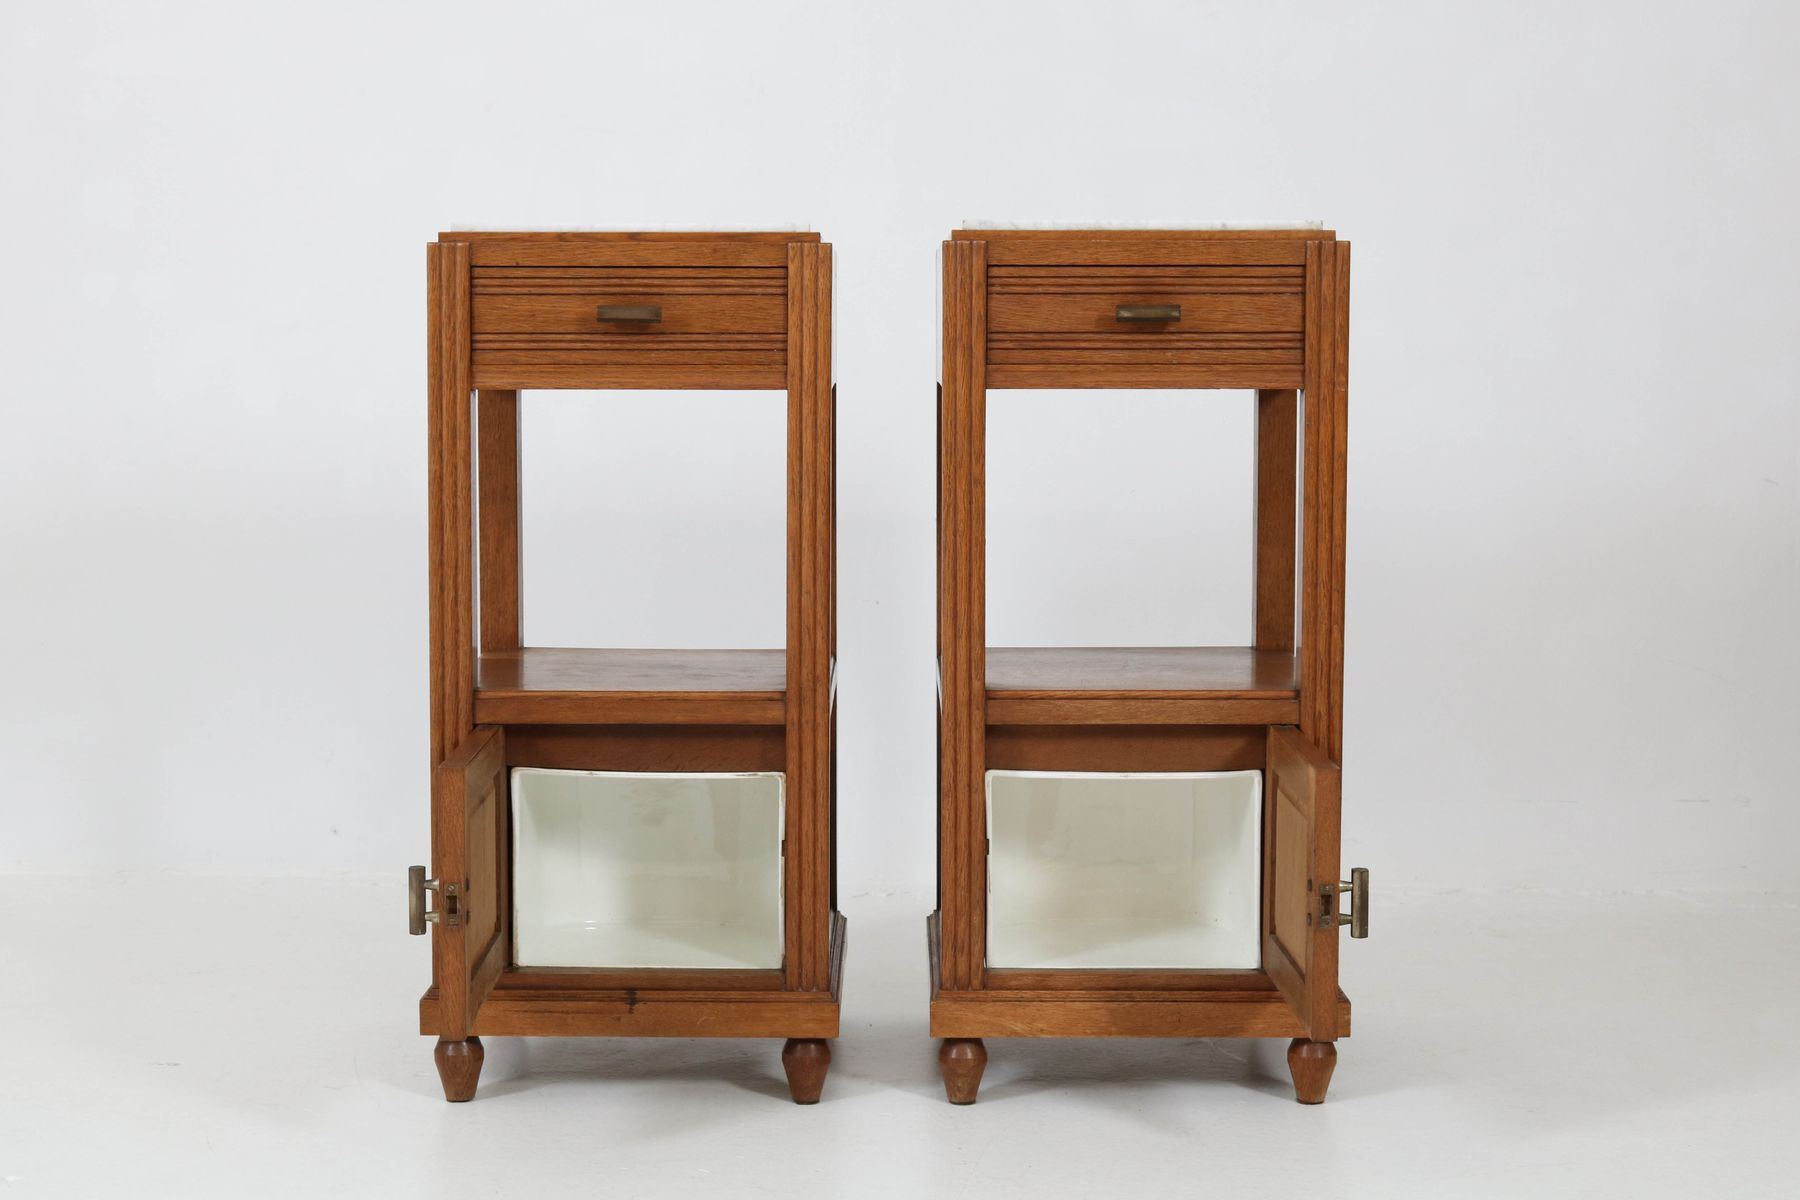 French Art Deco Nightstands In Oak With Marble Tops, 1930S,